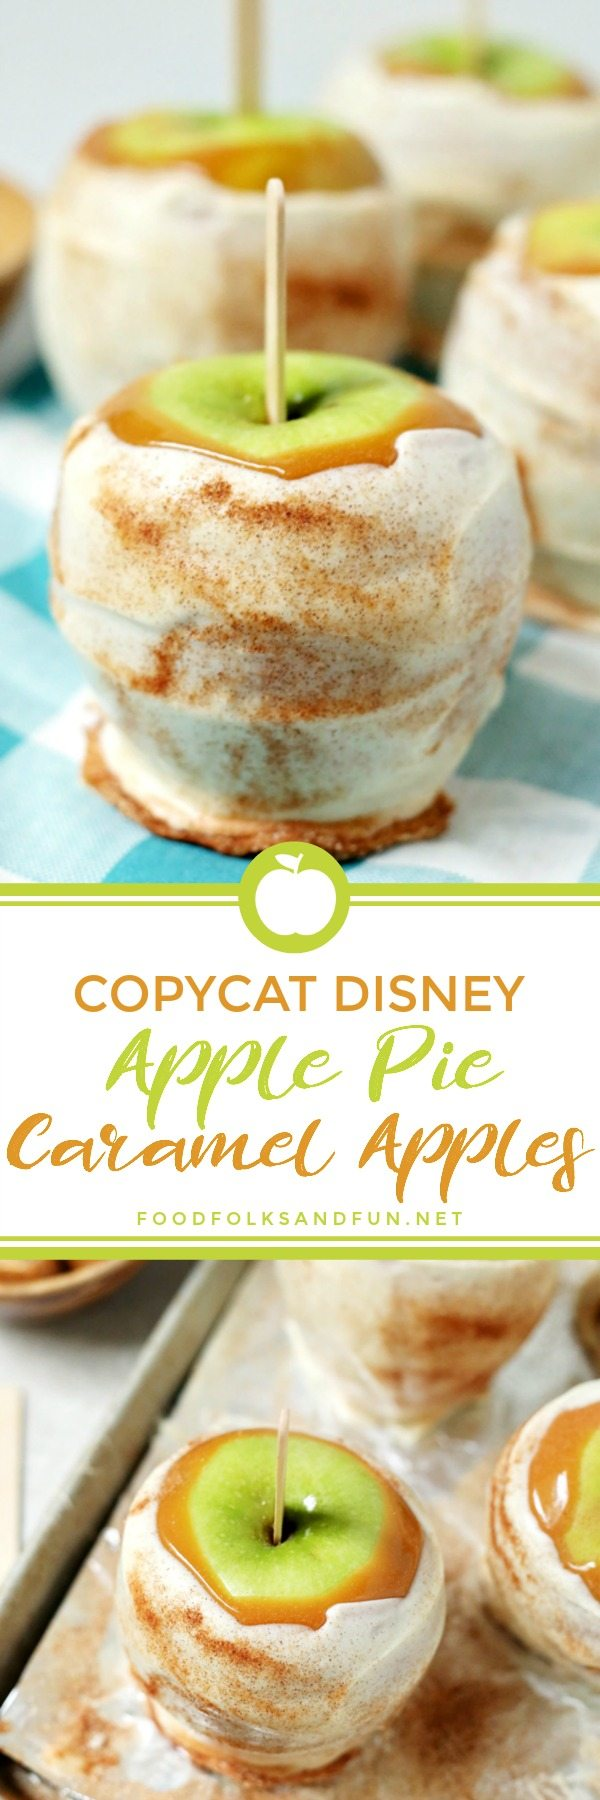 Copycat Disneyland Apple Pie Caramel Apples recipe